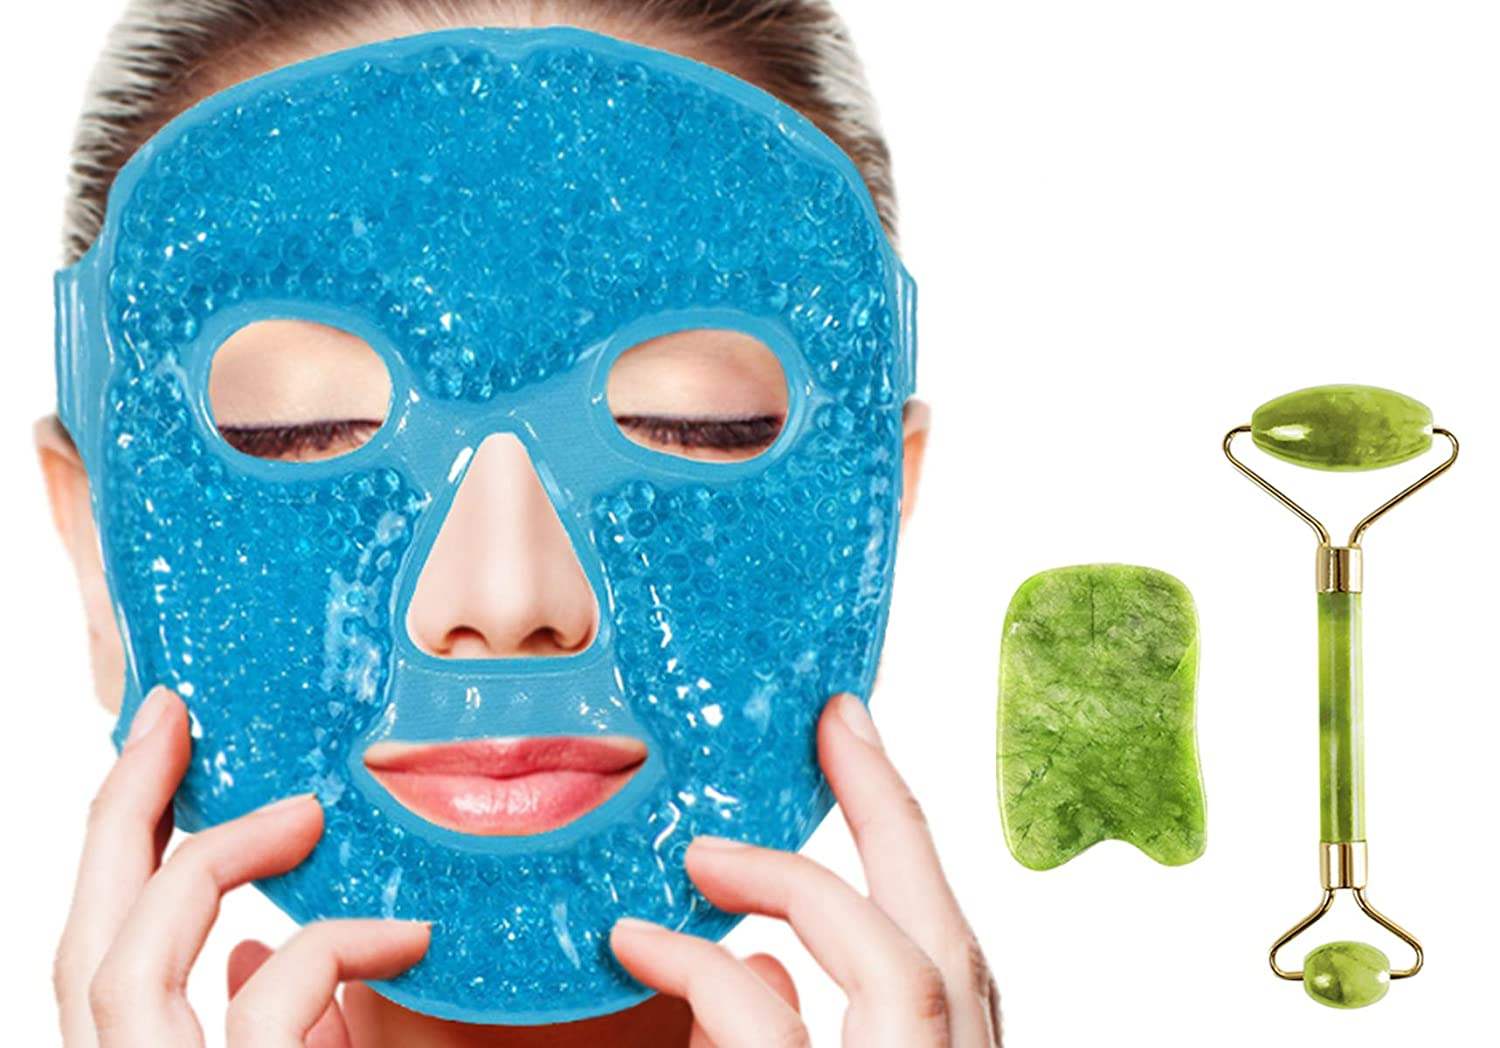 Puffy Eyes Gel Pack Mask with Jade Roller and Gua Sha Tool,100% Real Ficial Ice Jade Roller Anti Wrinkle Mask Therapy Pack Reusable Large for Face & Eye Puffiness Migraine Relief Gifts for Women